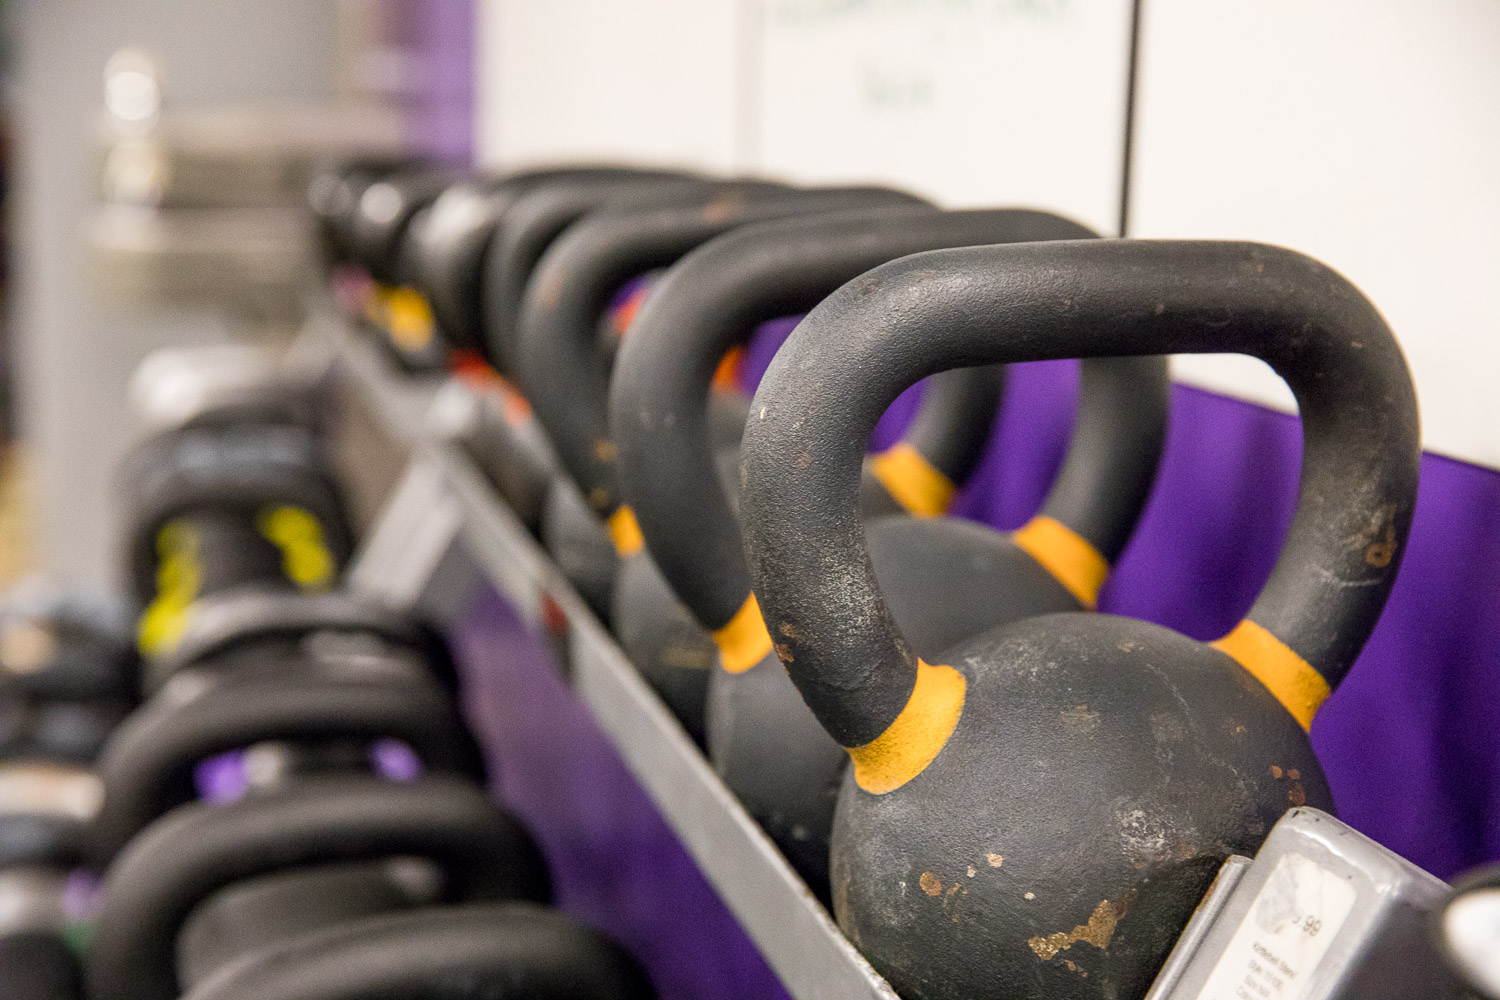 Kettlebells. Why did it have to be kettlebells?!